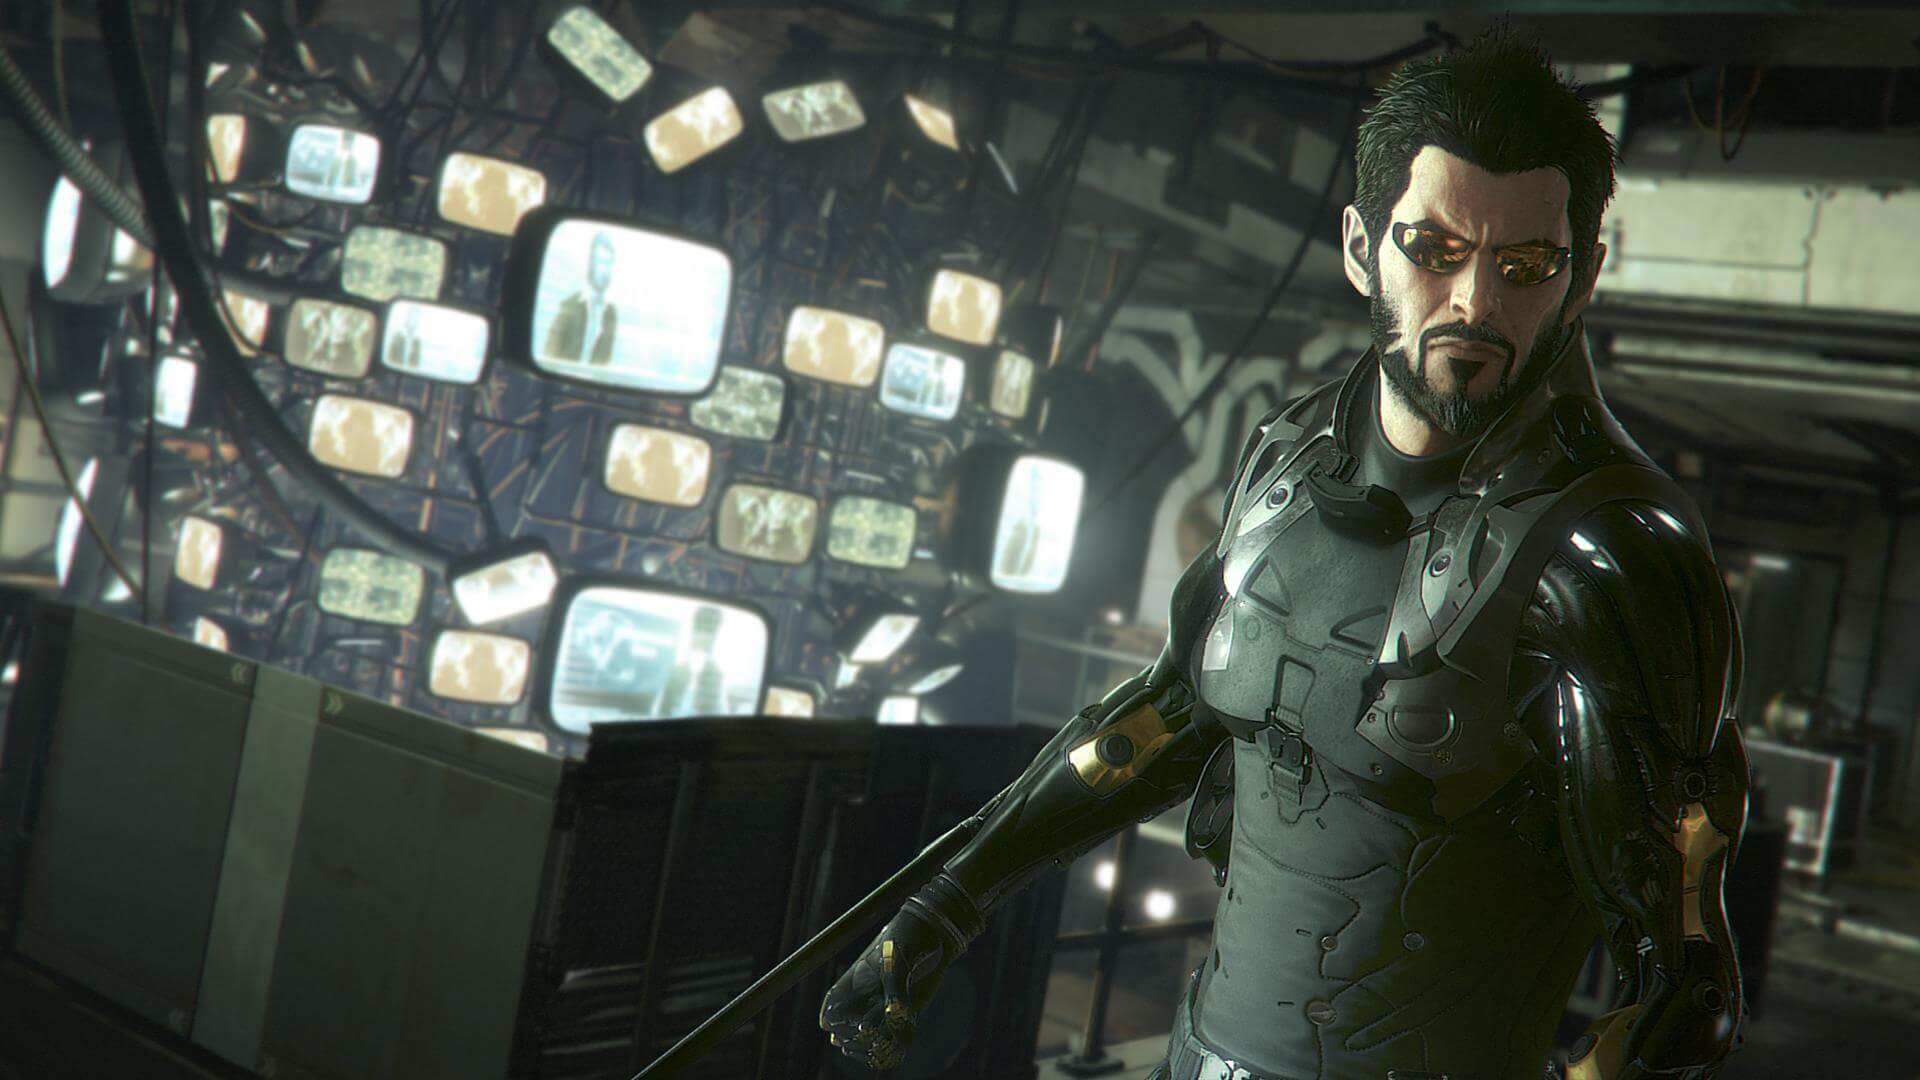 New Gameplay Trailer For Deus Ex Mankind Divided